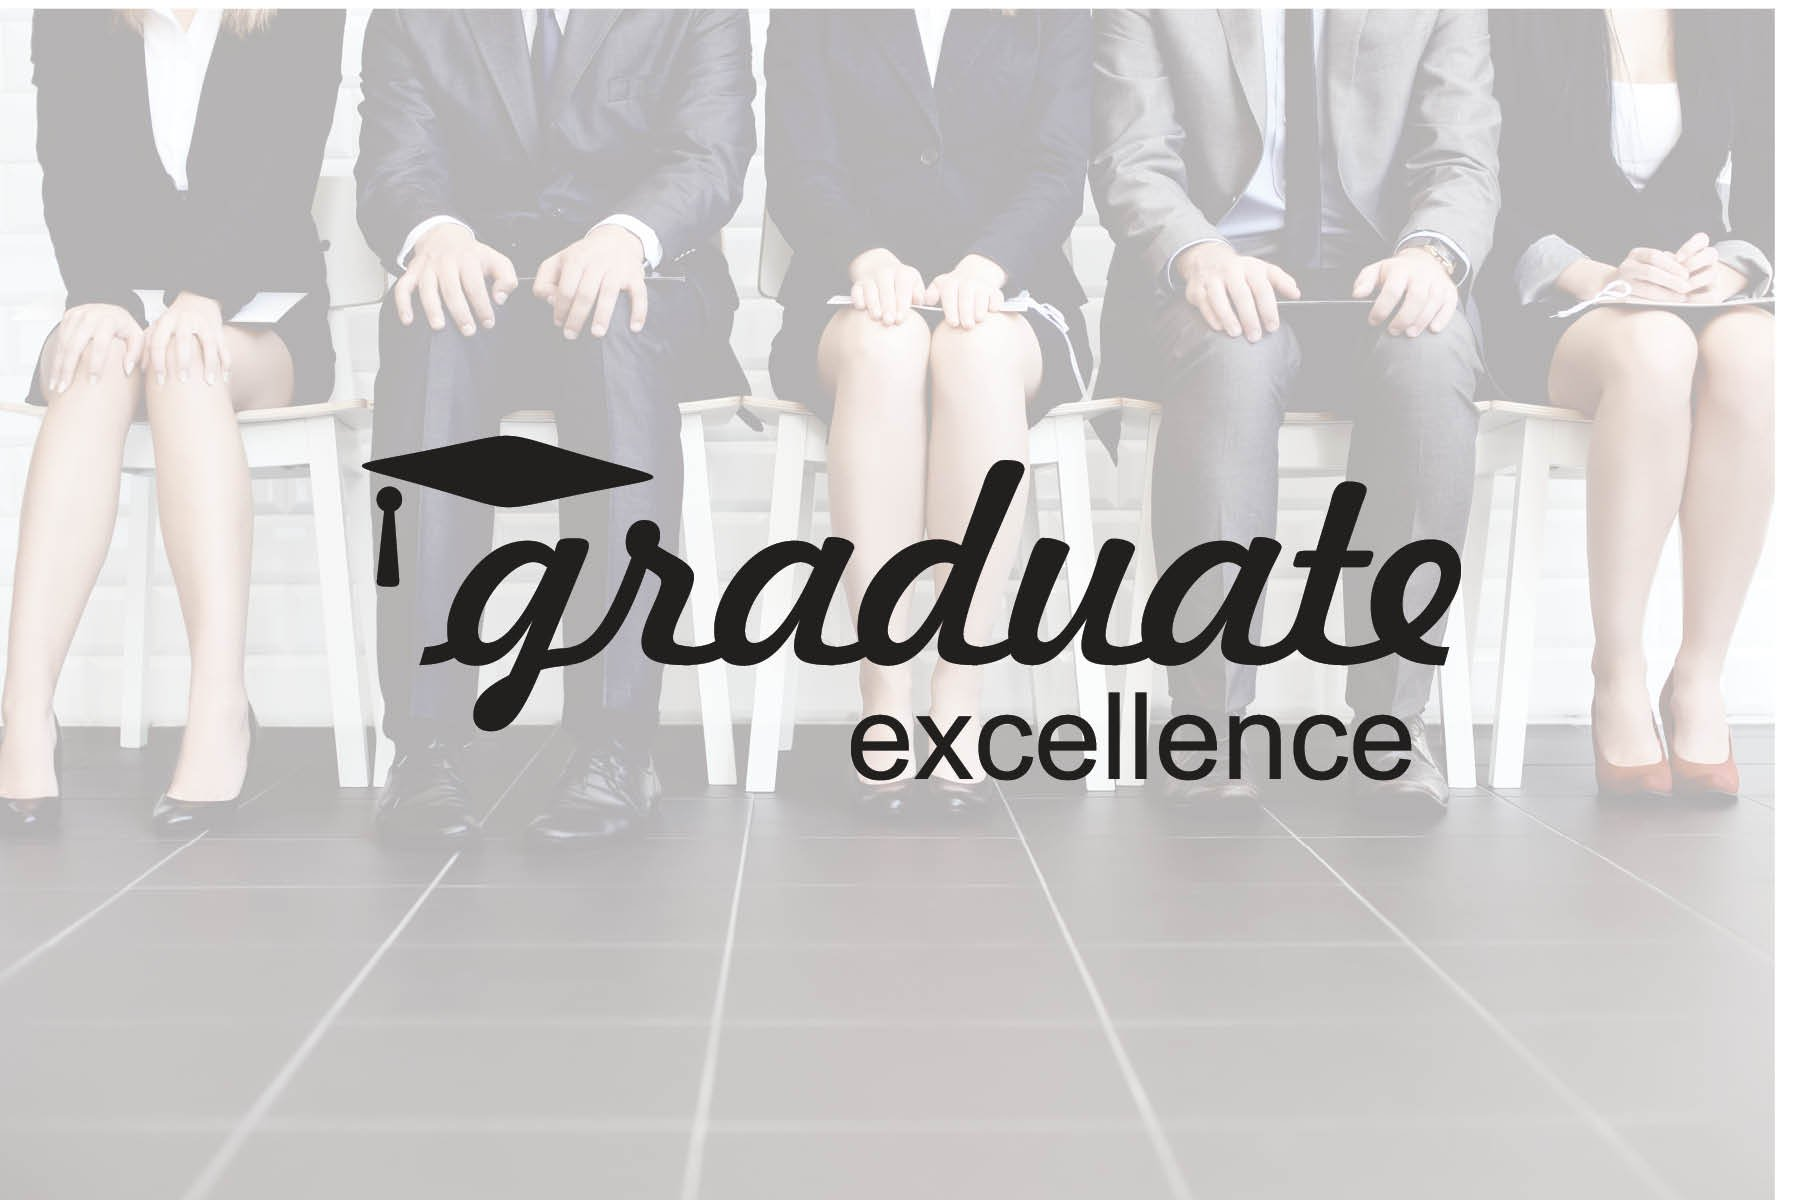 Professional Web Design | Graduate Excellence | Castle Hill